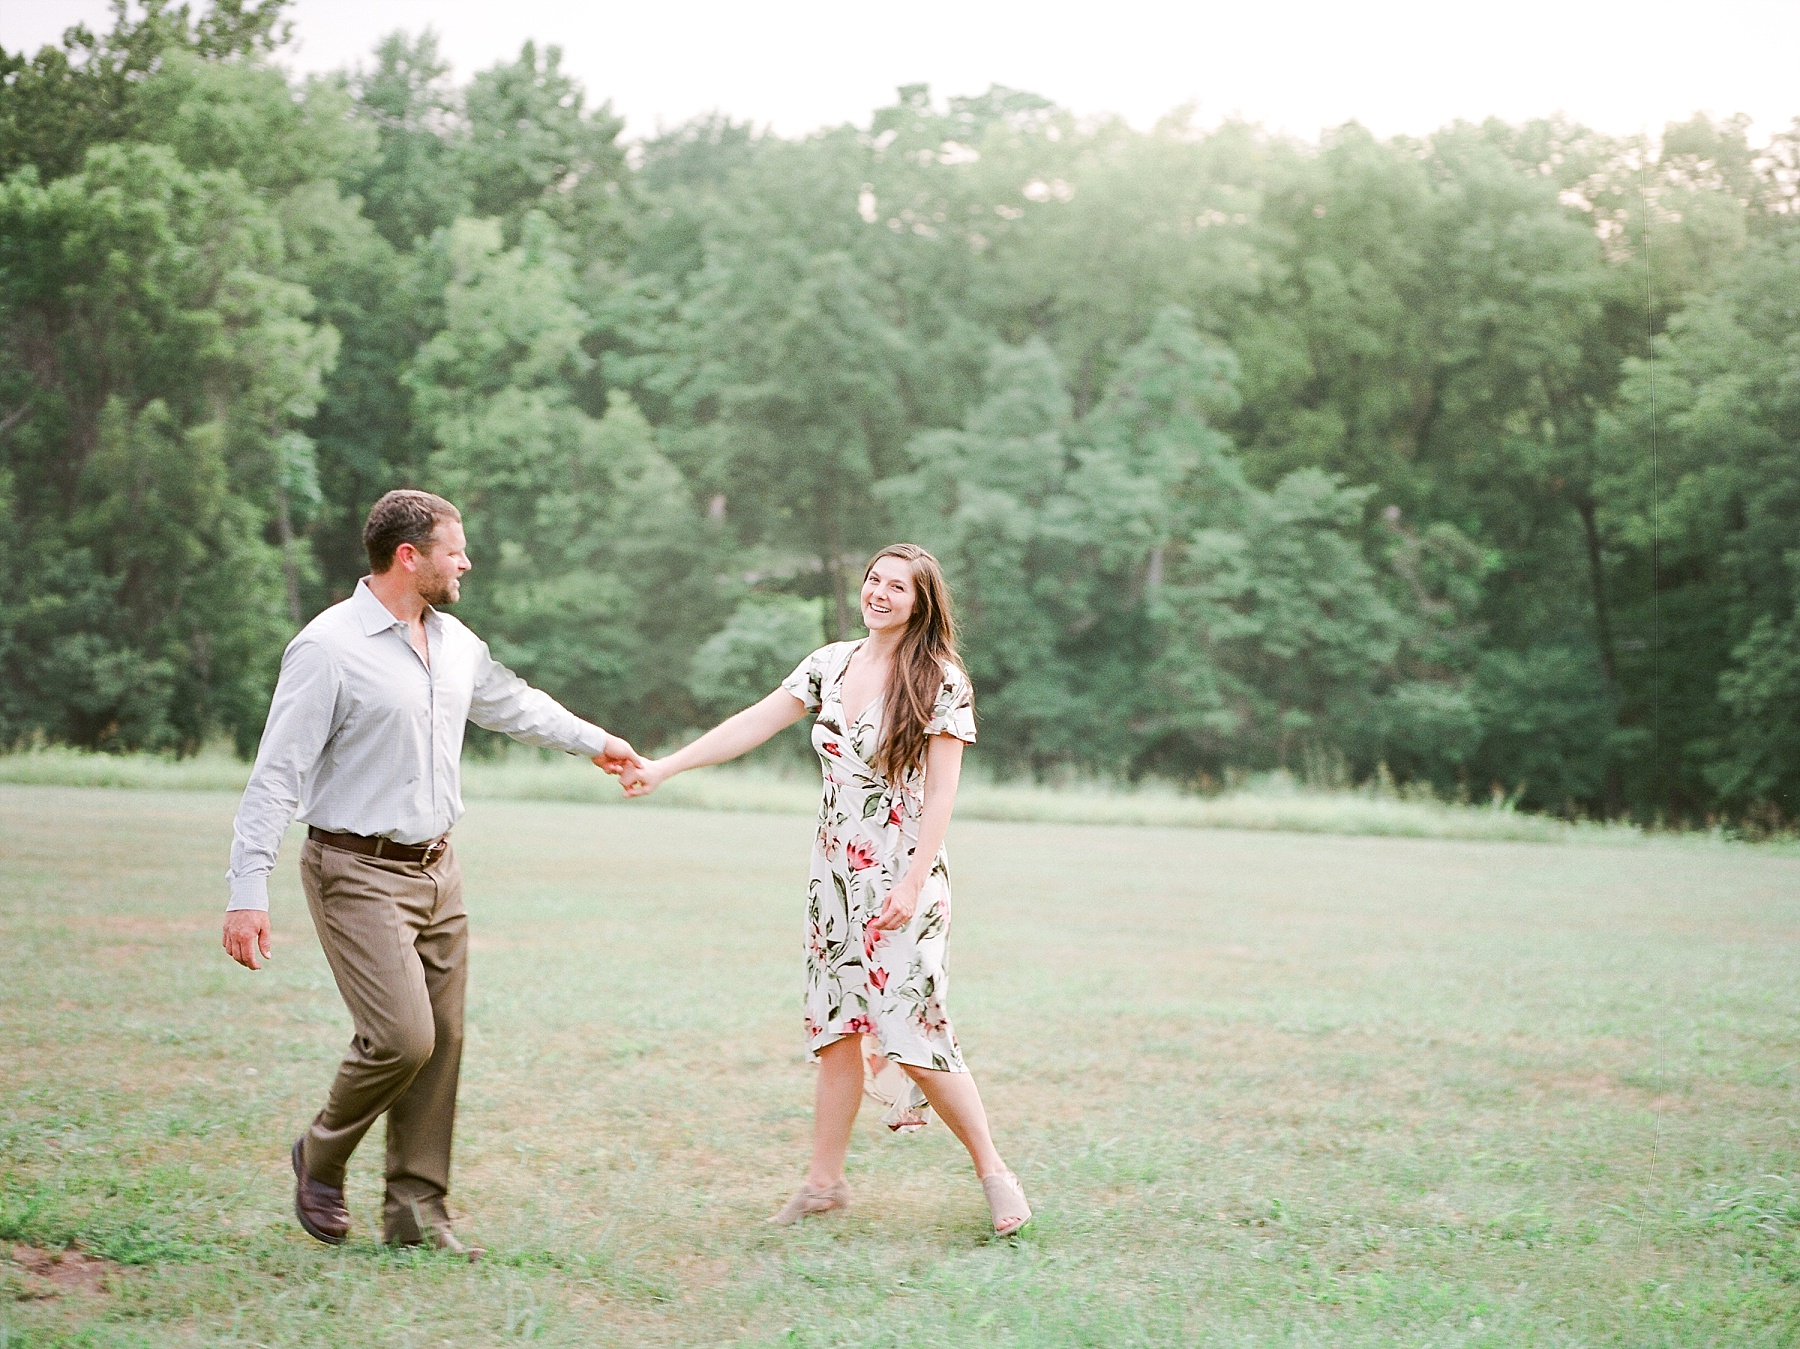 Sunset Engagement Session at Faust Park Chesterfield Missouri by Kelsi Kliethermes Photography_0018.jpg